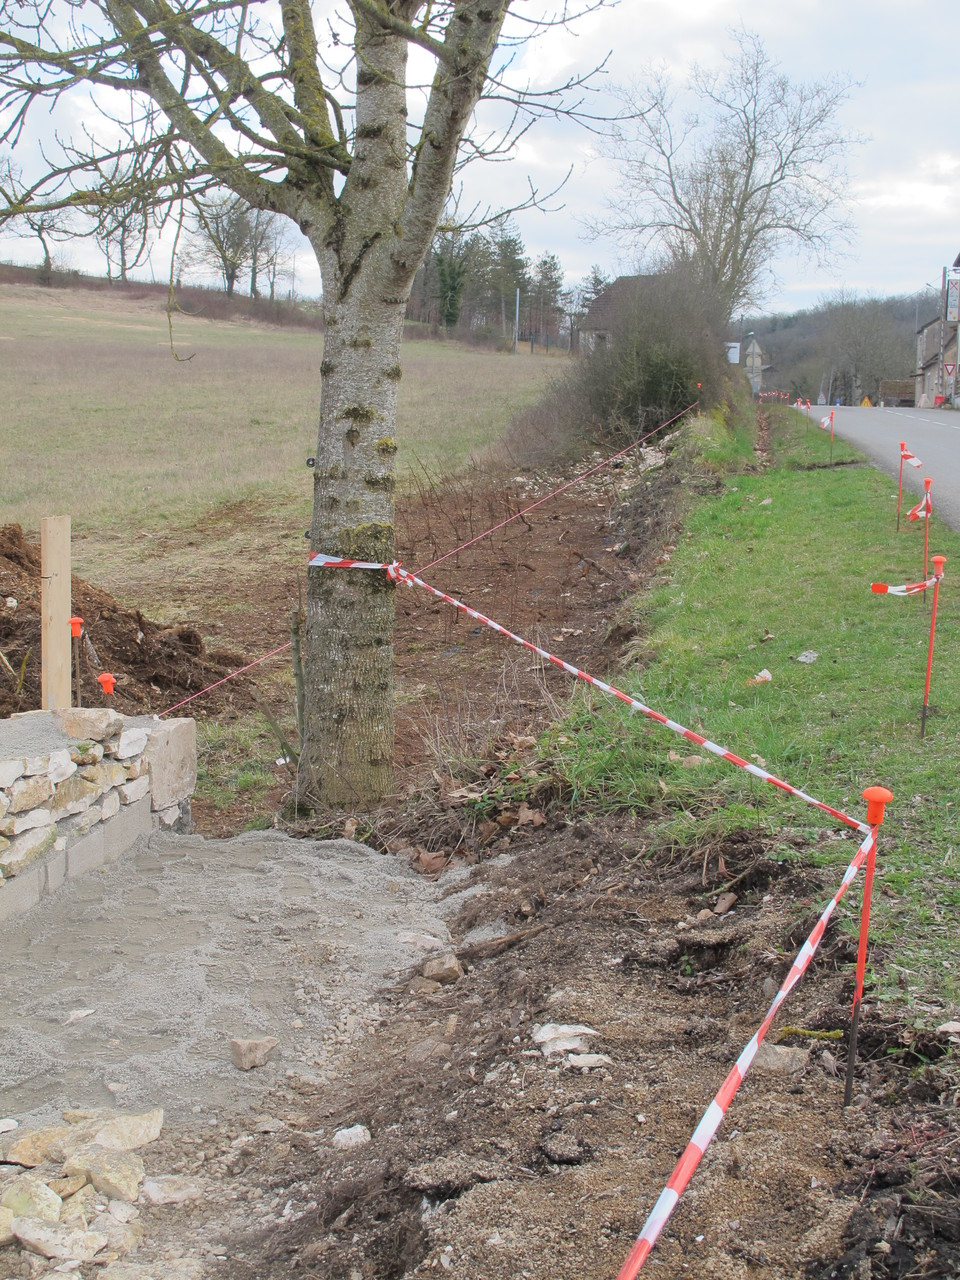 suite de la construction du muret